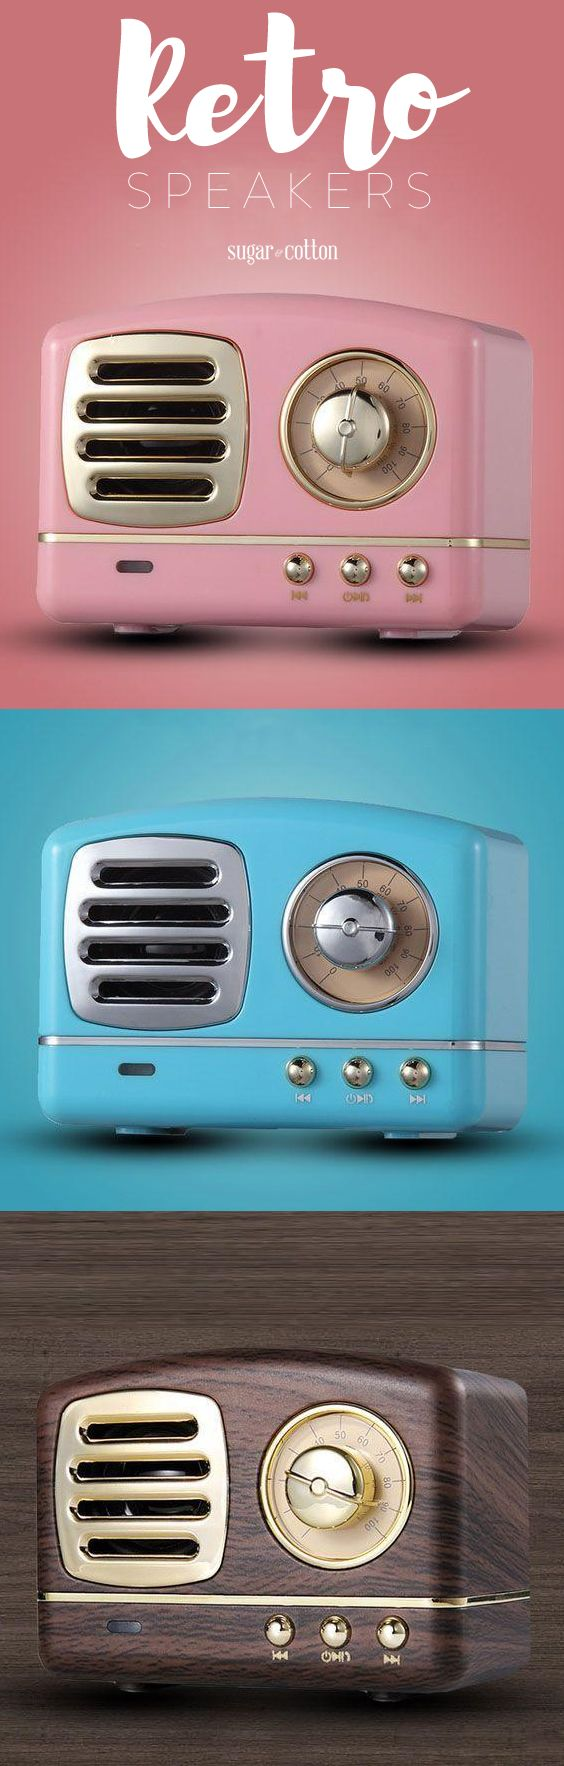 Cool Speakers For Bedroom Retro Bluetooth Speakers In 2019 Products House Design Home